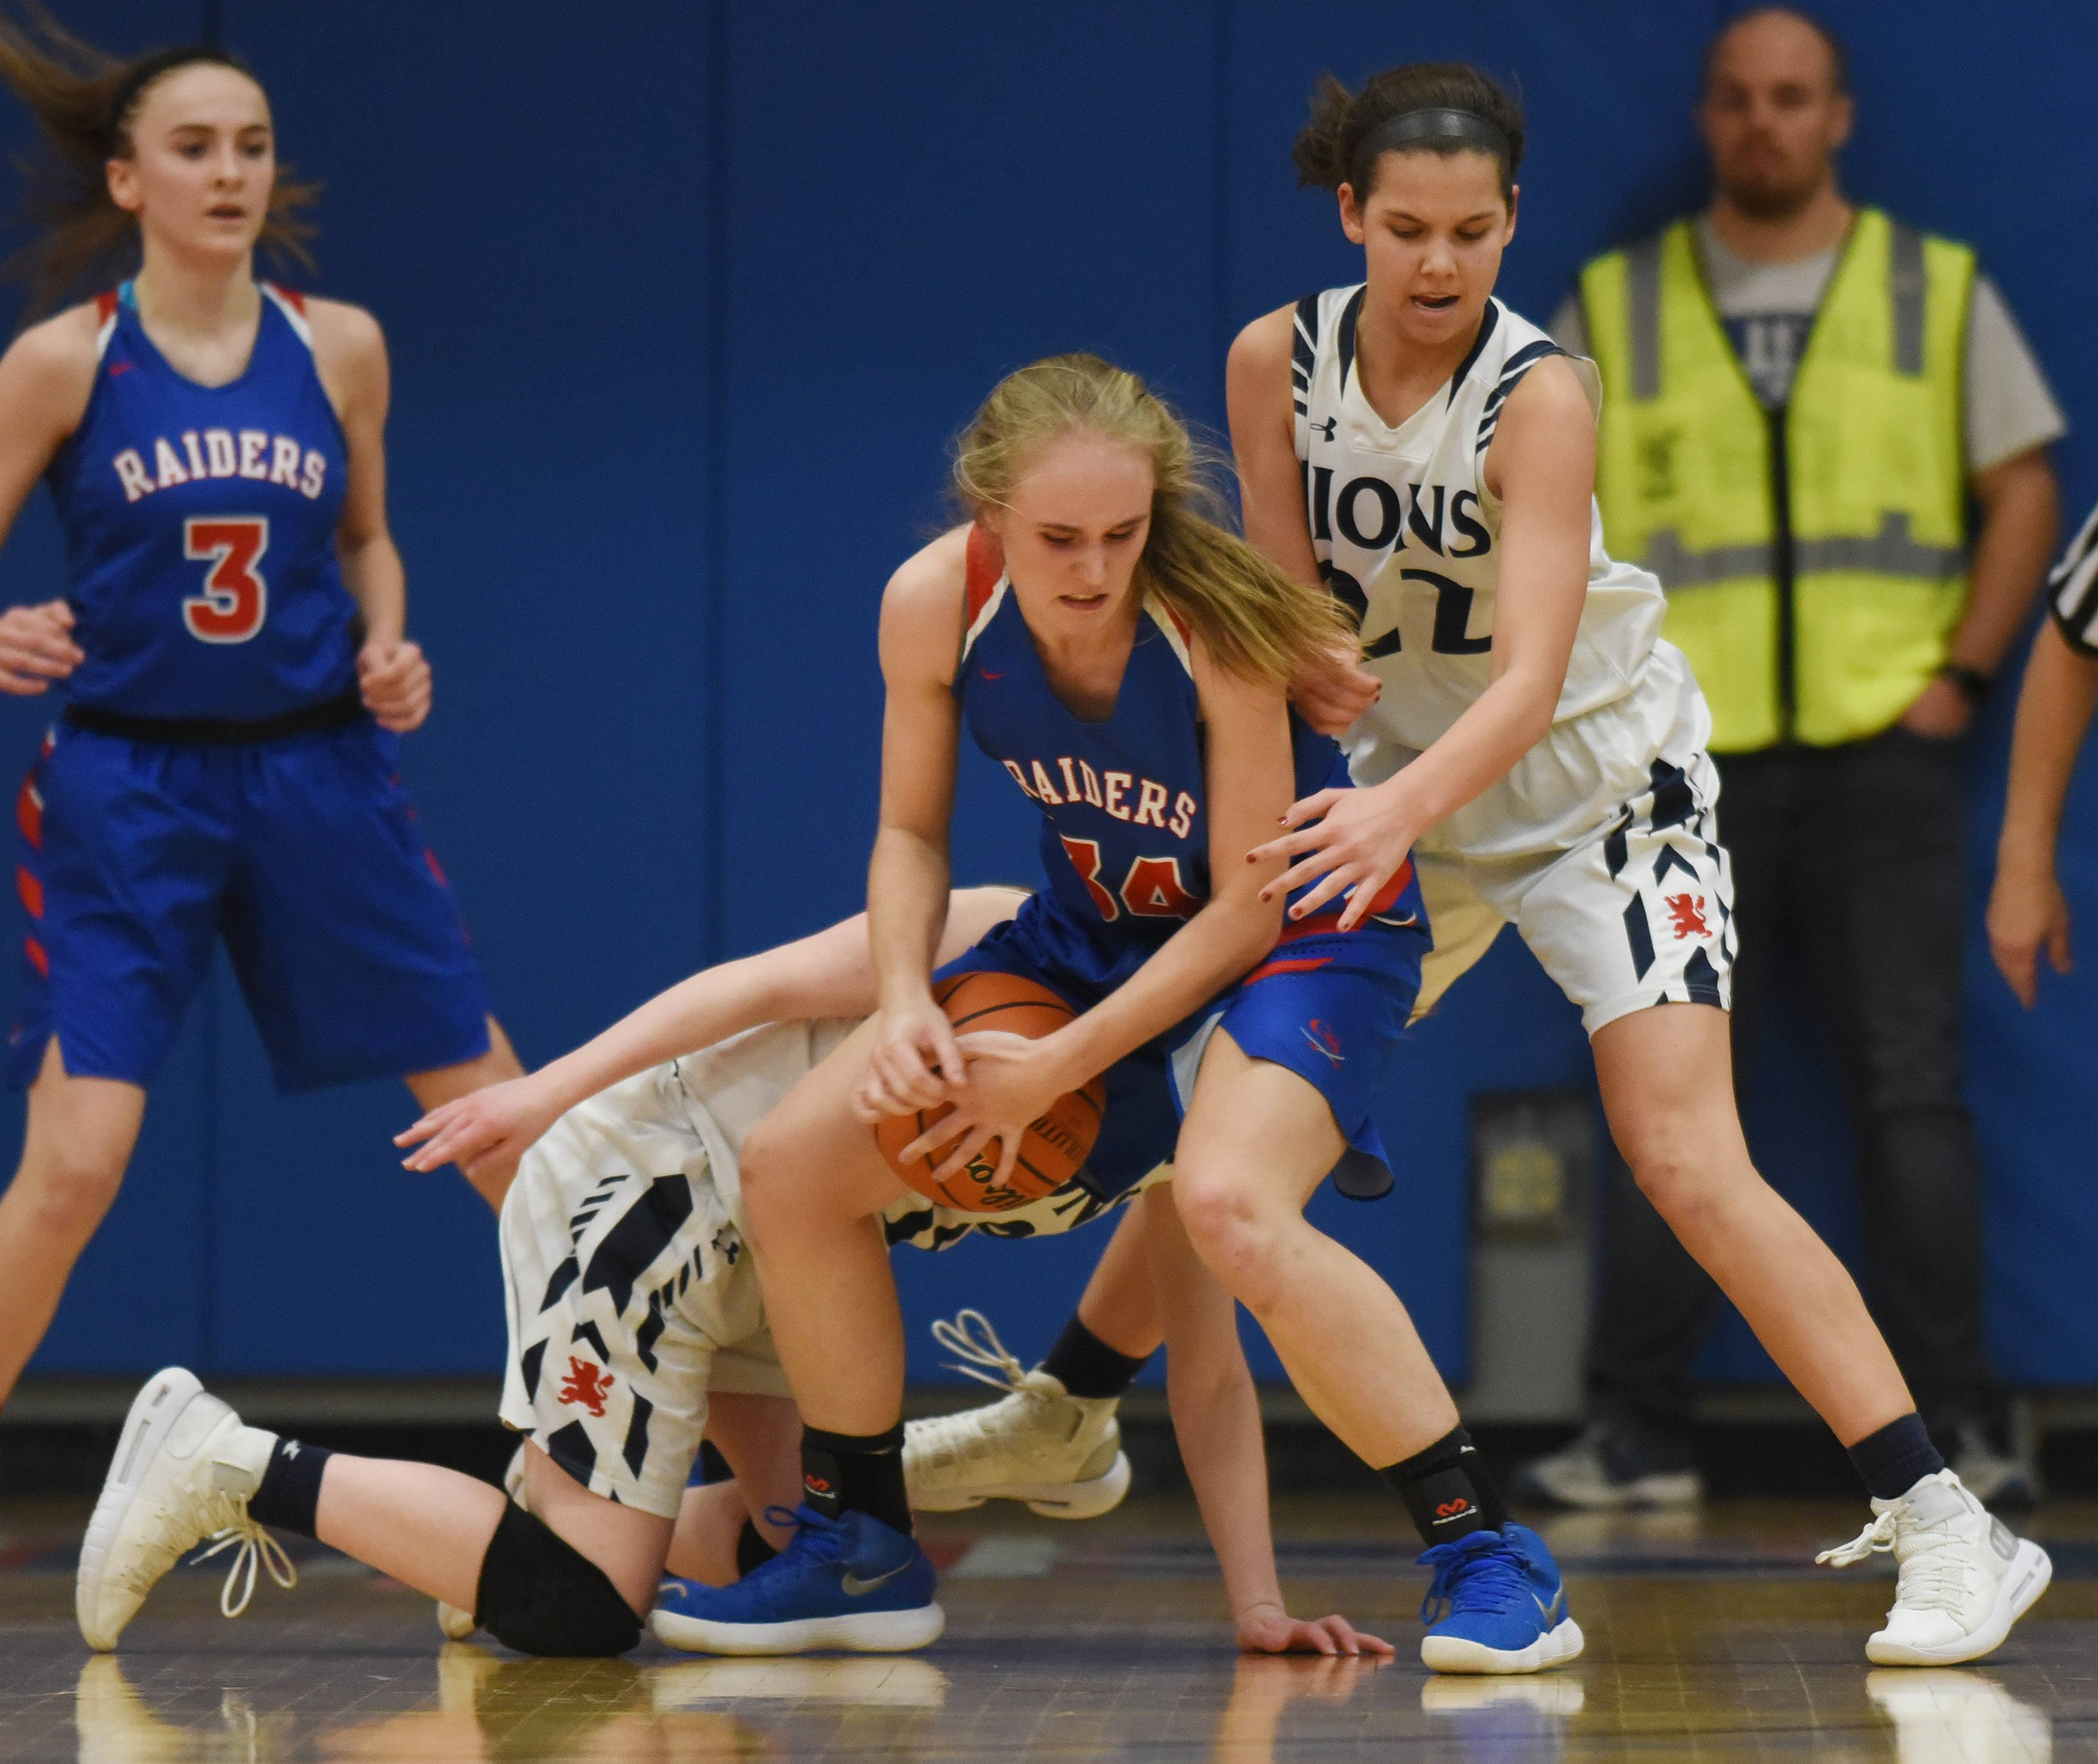 Glenbard South's Alex Wilharm, middle, comes up with the ball between St. Viator's Emma Morrisey, back, and Joy Bergstrom, right, during the Class 3A girls baskeball supersectional at Elgin Community College Monday.